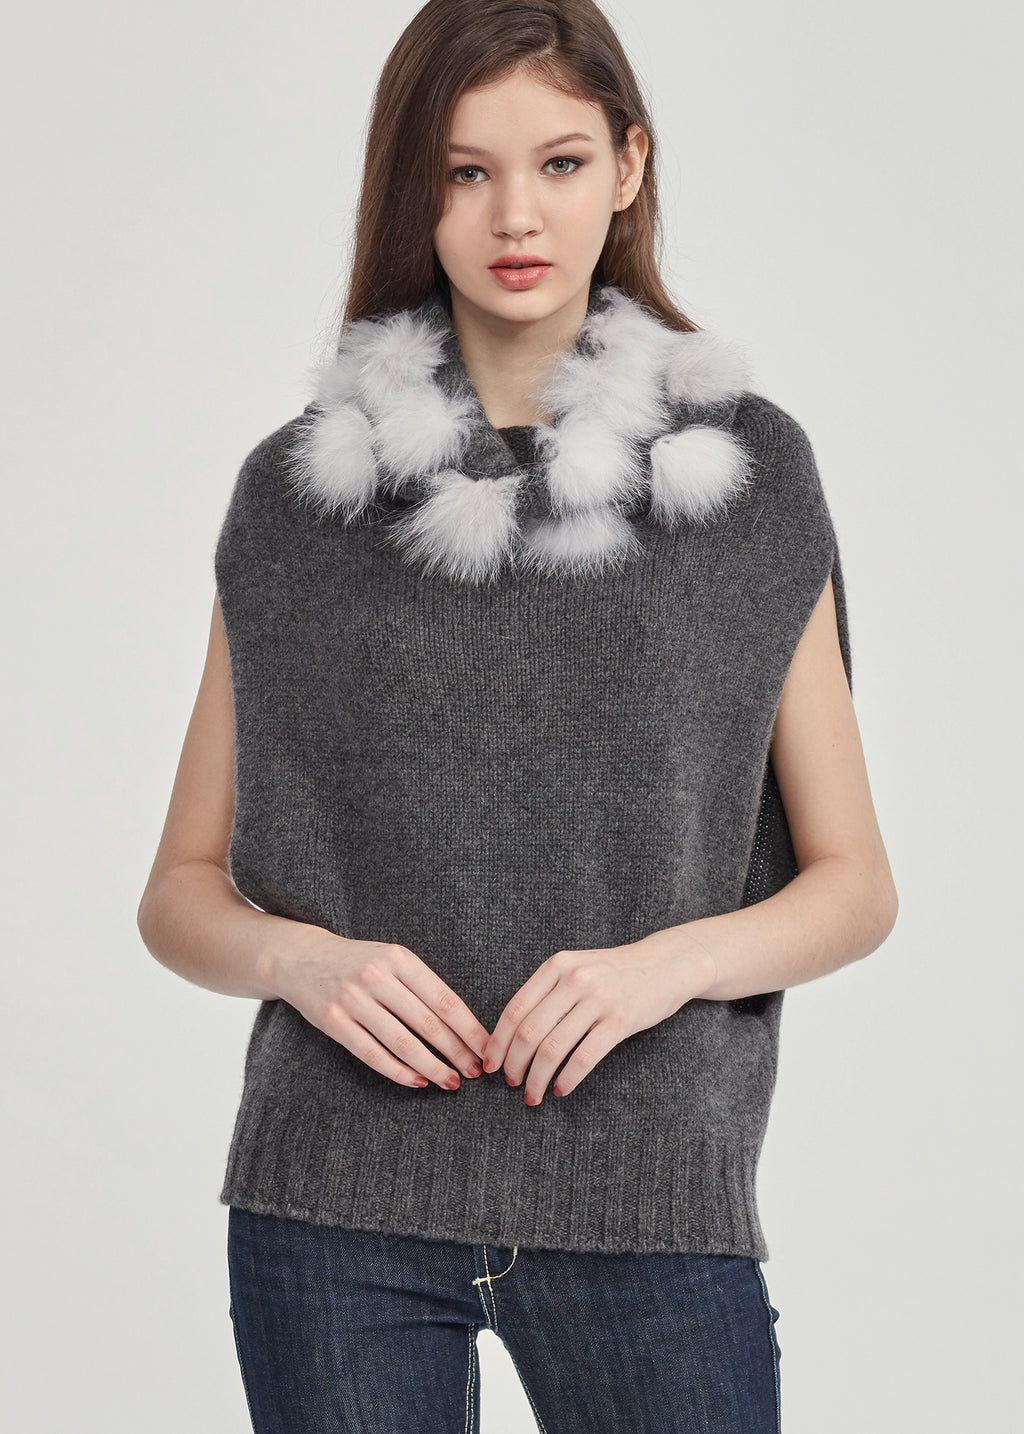 Turtleneck Cashmere Vest with Mink Pom Pom